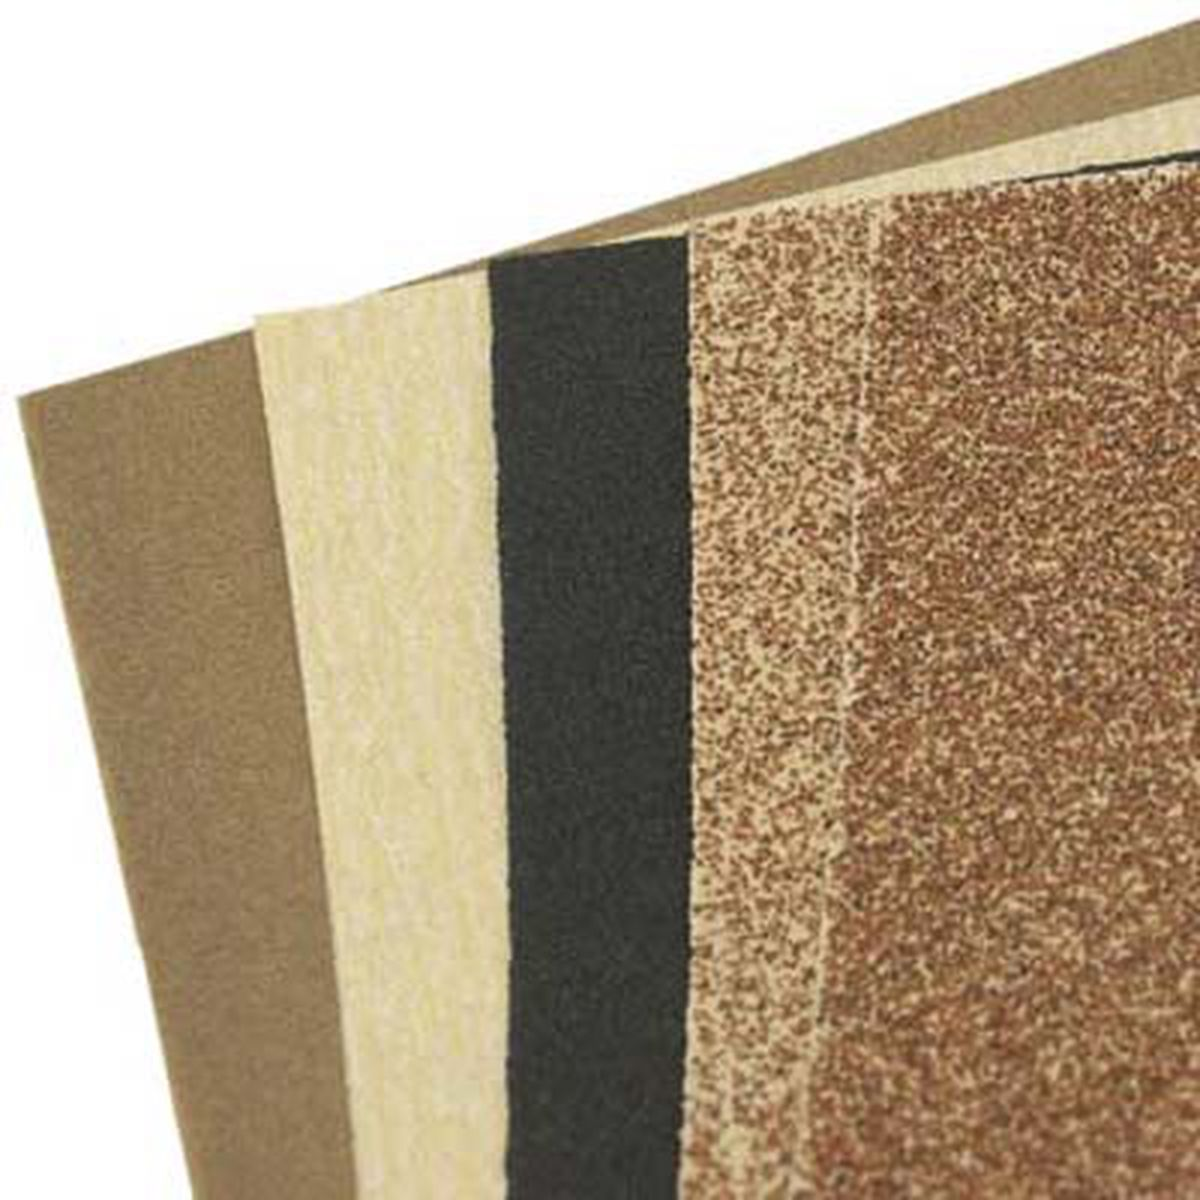 Sandpaper used to smooth edges to give the houses a real life look